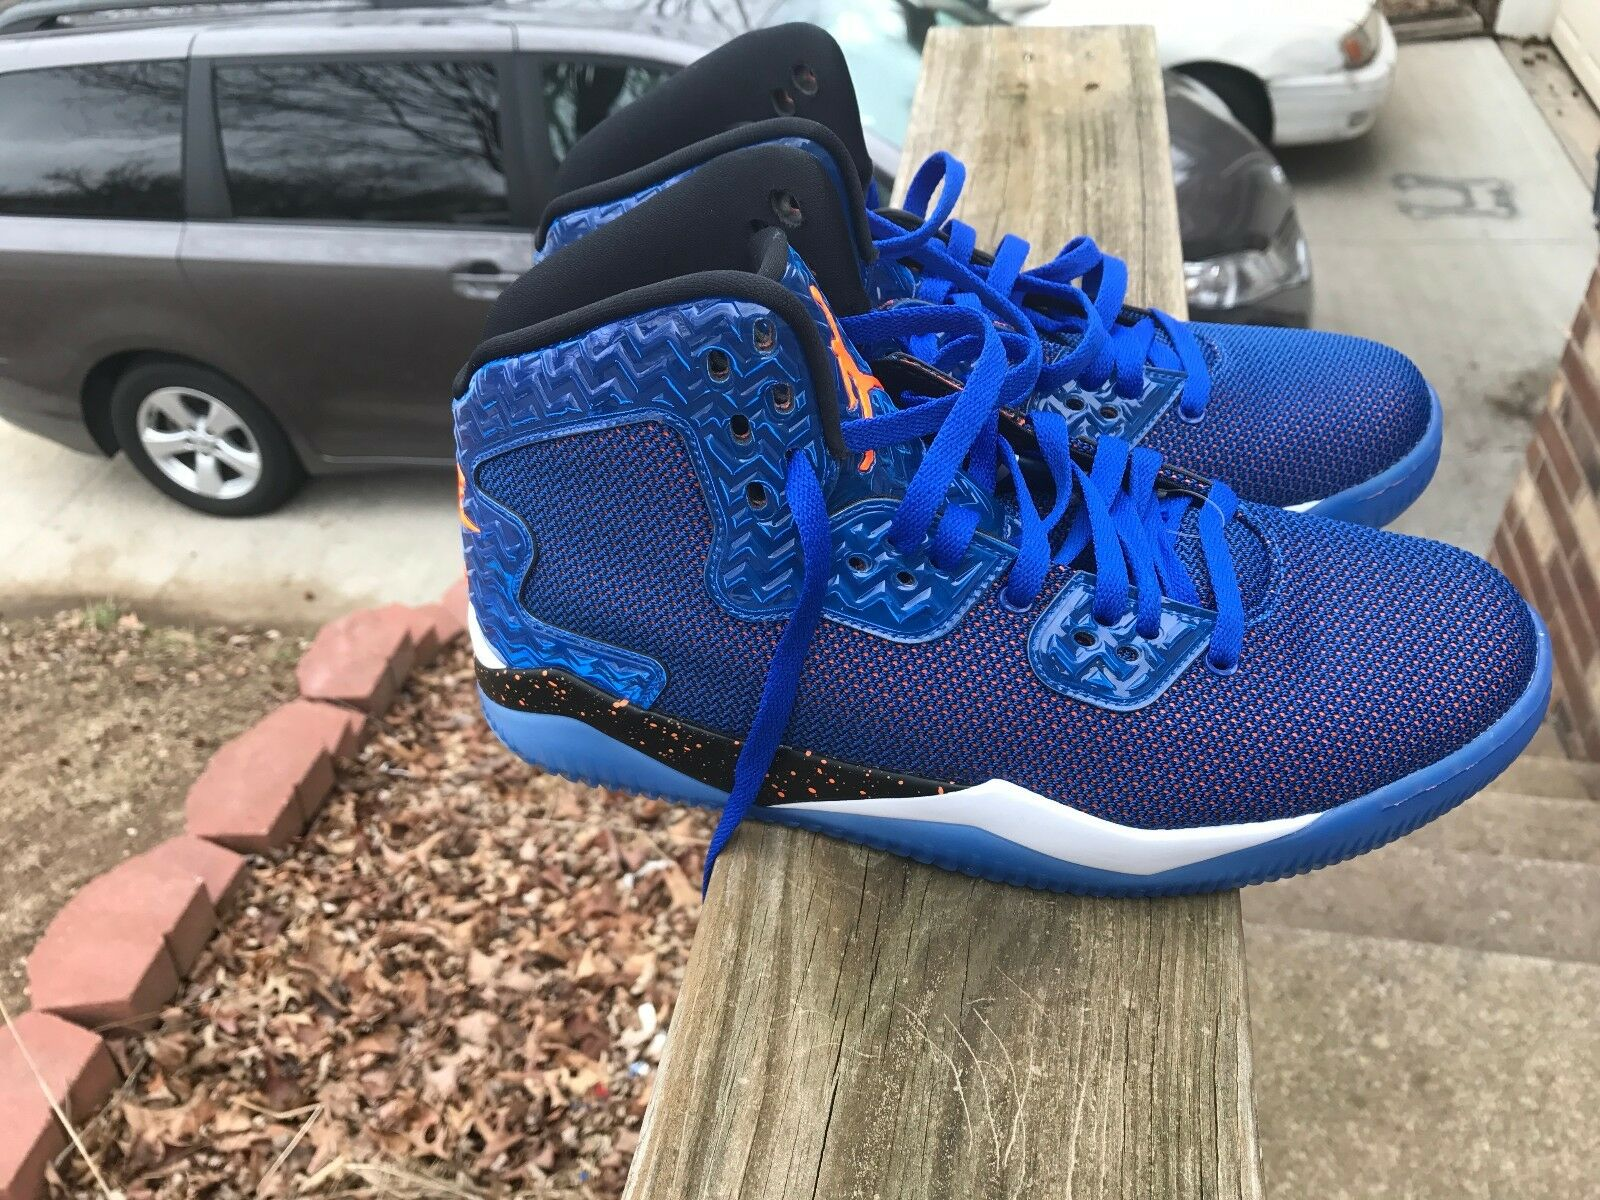 Nike Men Air Jordan Spike Forty 40 PE Game Royal 807541 405 Blue Orange SIZE 9.5 Seasonal price cuts, discount benefits